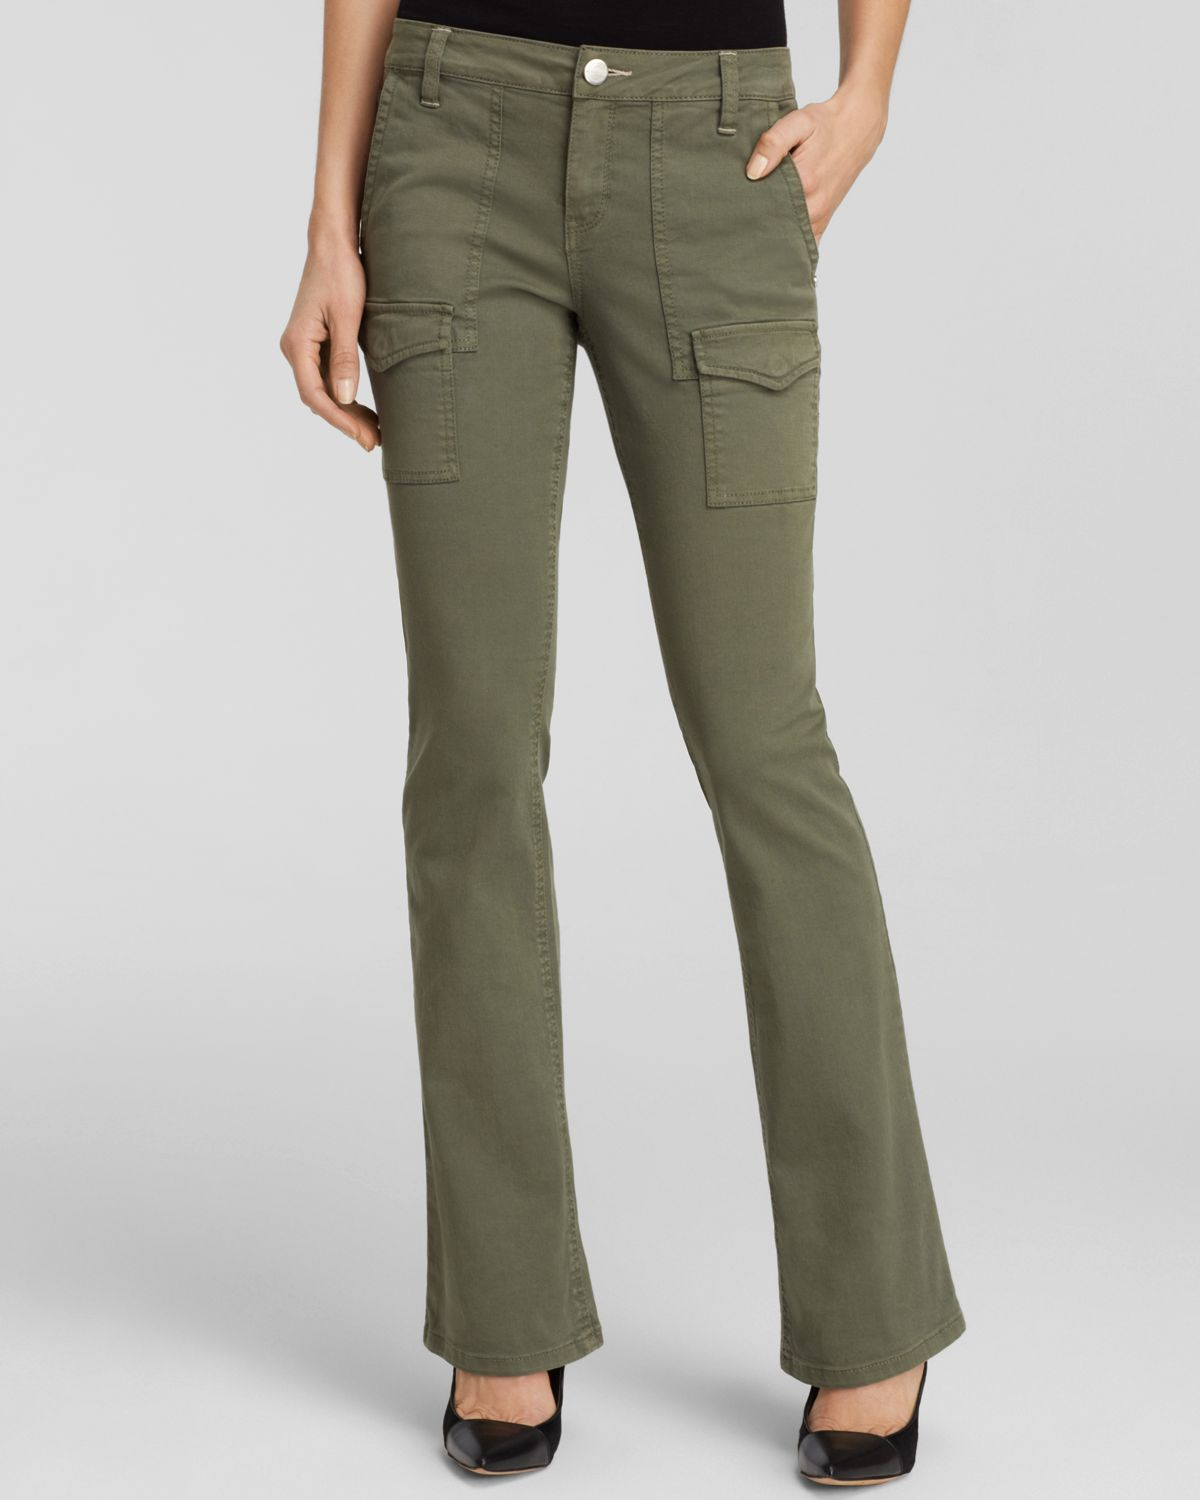 Sanctuary Bootcut Cargo Pants in Green | Lyst